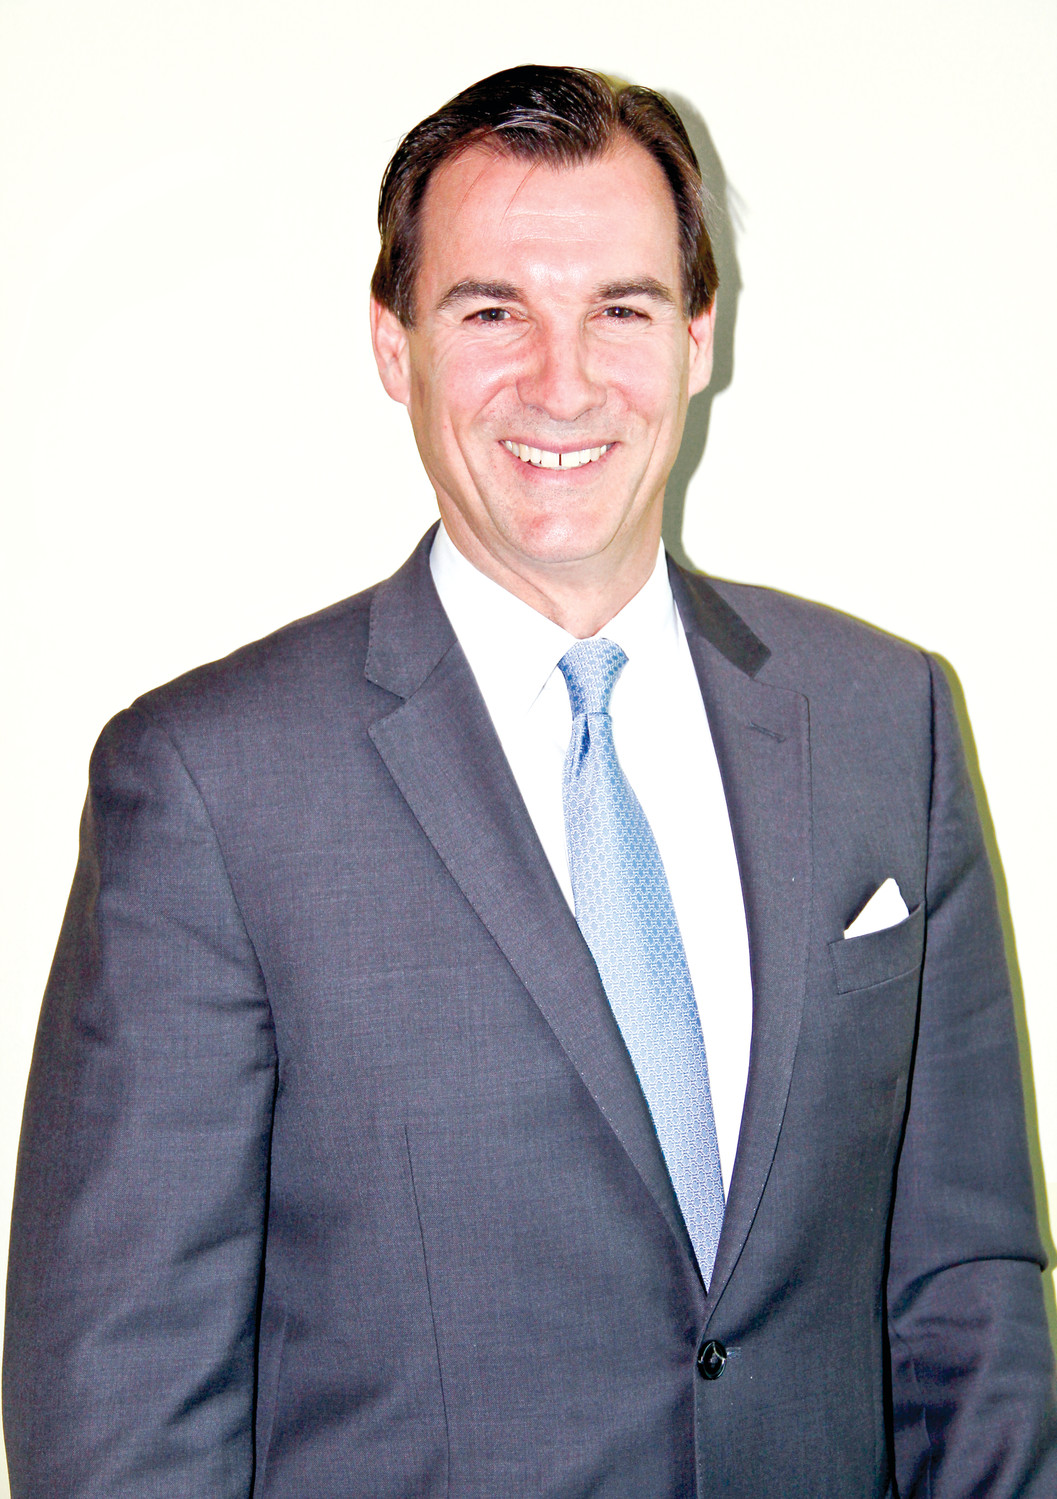 U.S. Rep. Tom Suozzi